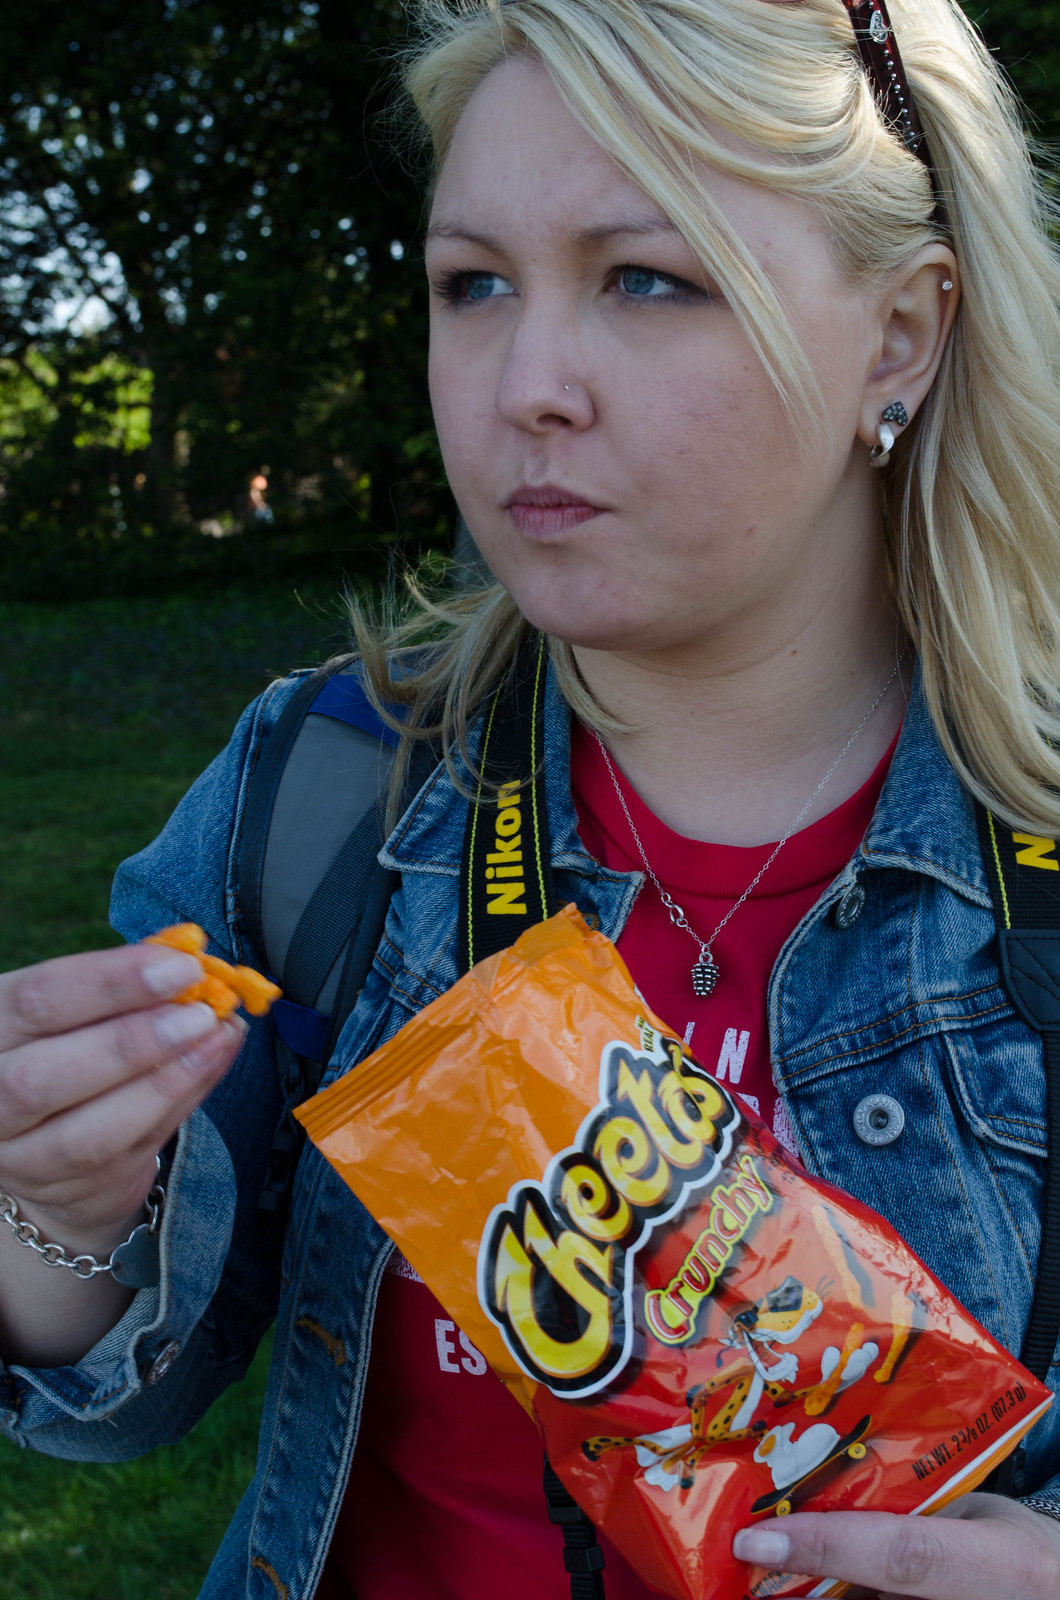 Theresa eating Cheetos in DC